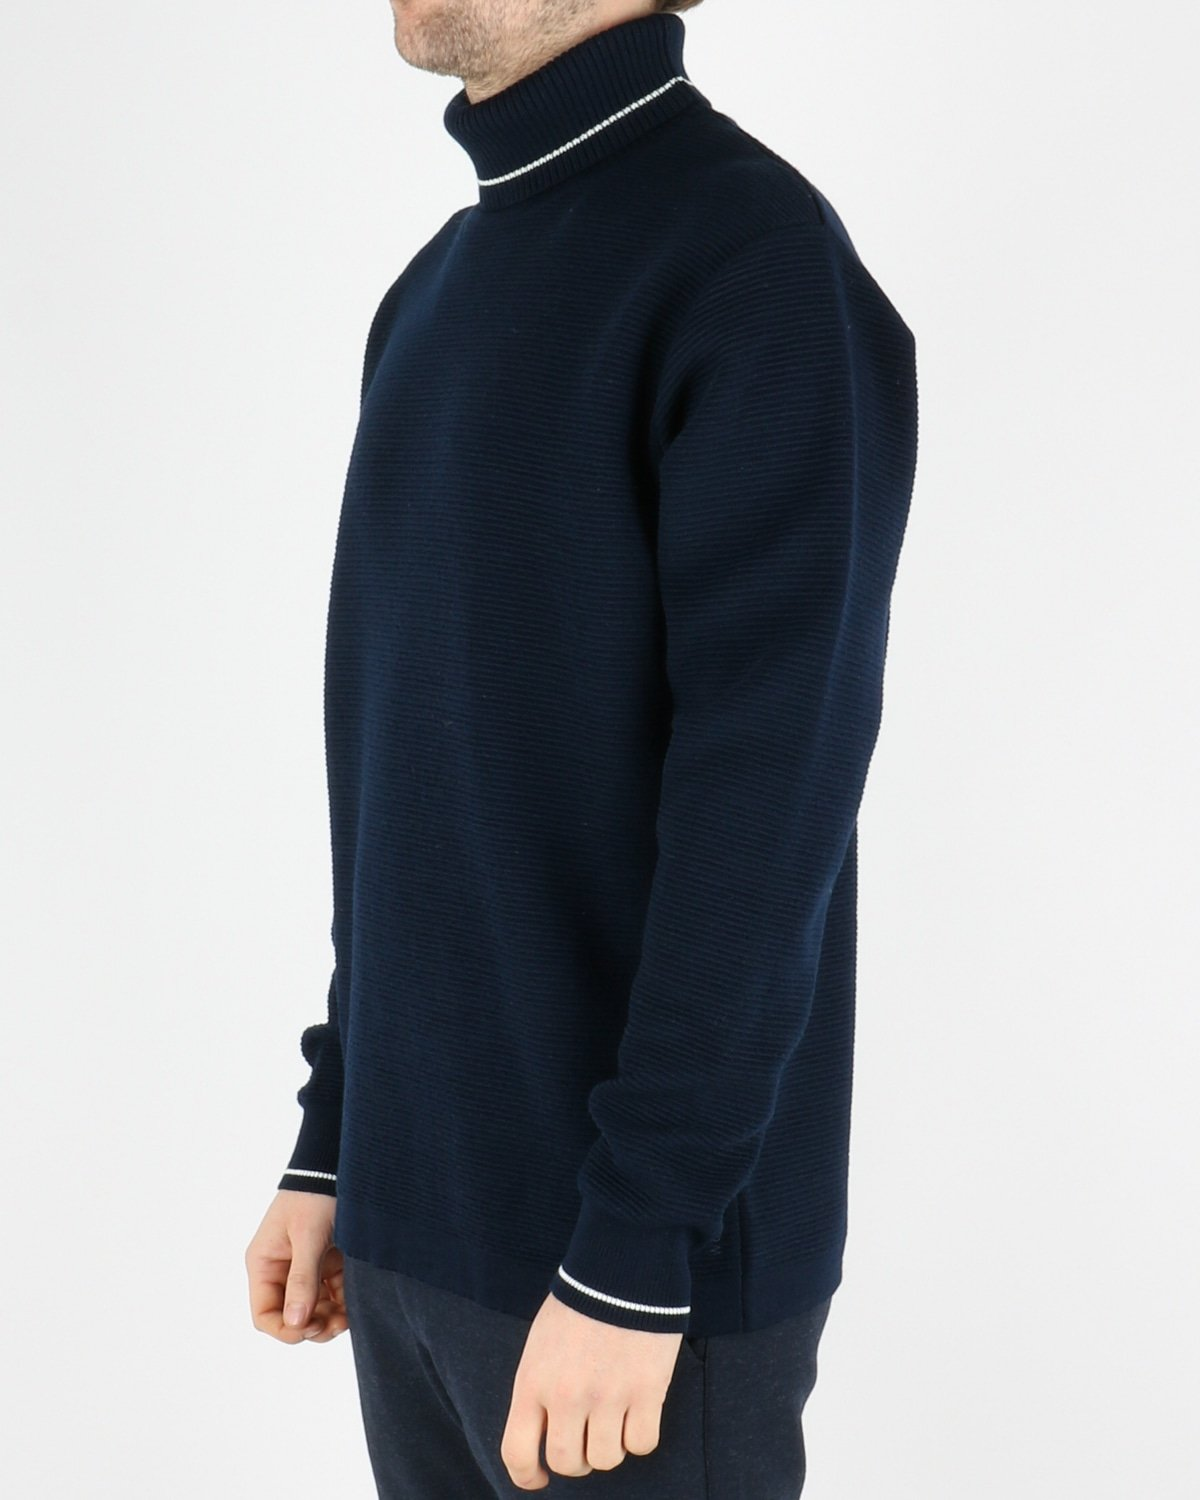 woodbird_craving otto turtle knit_navy_2_4